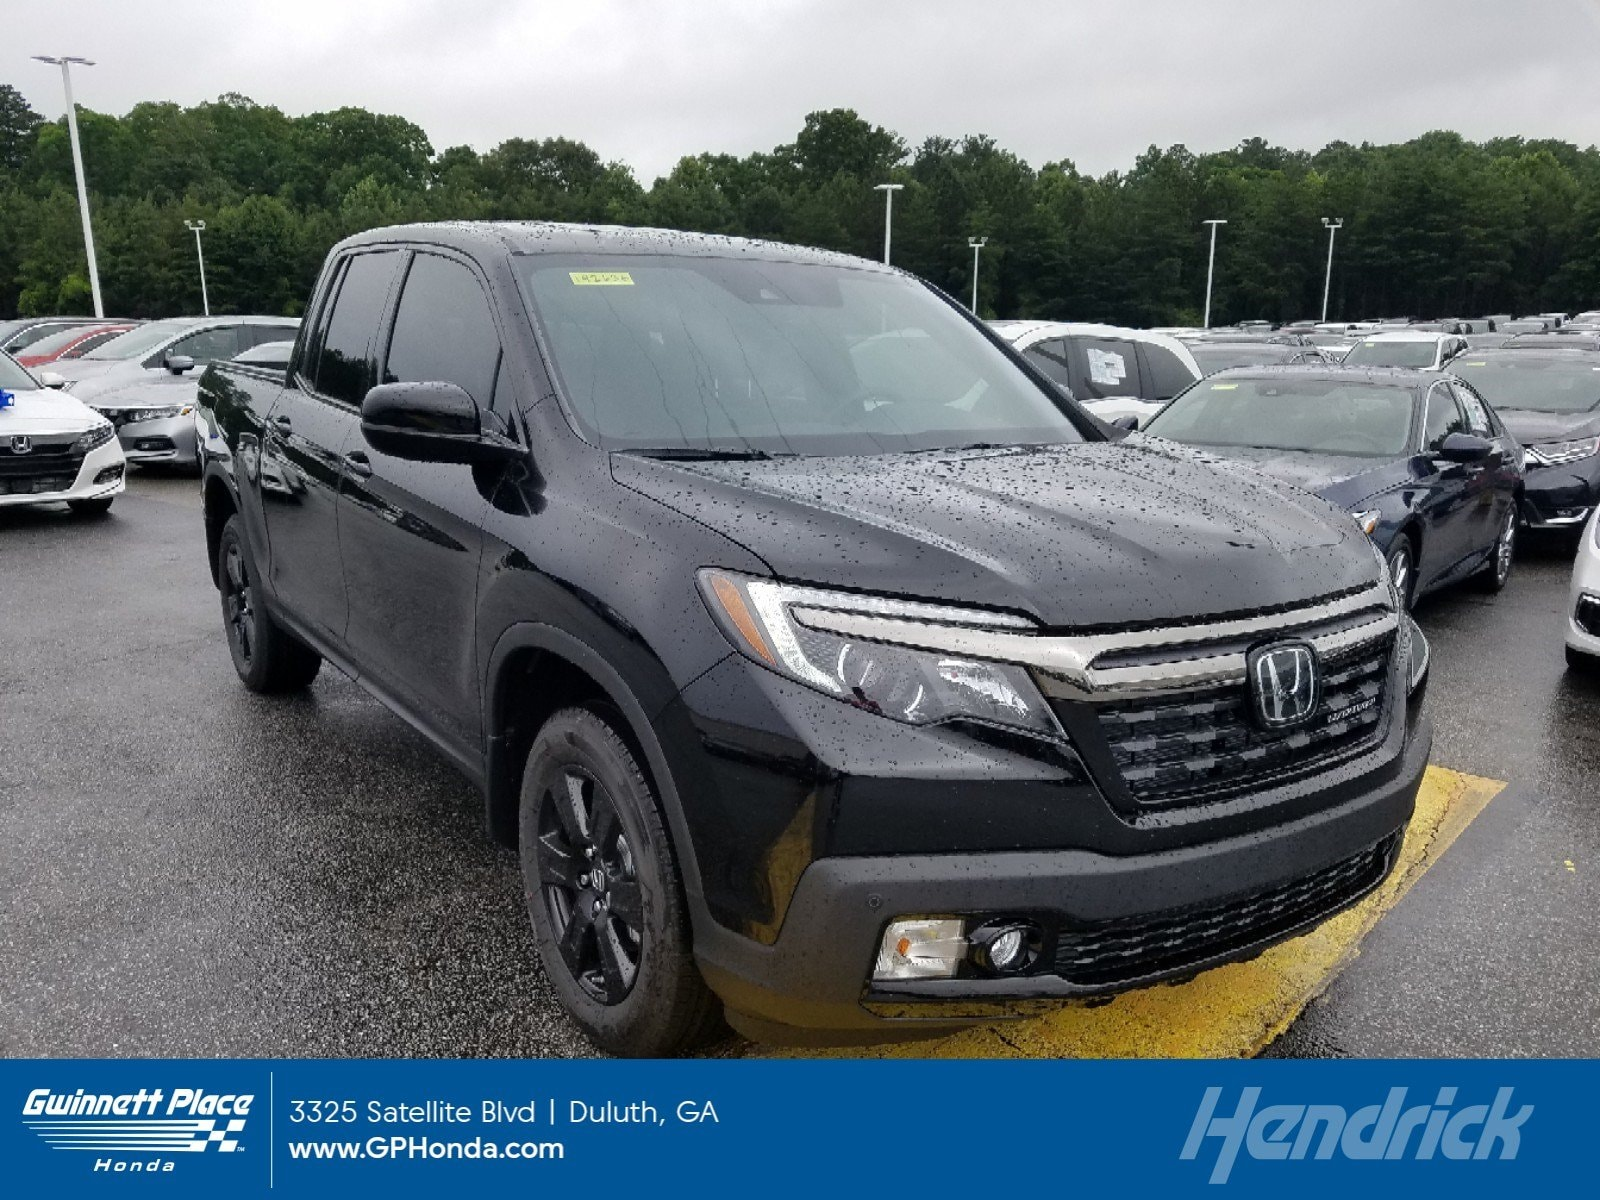 New 2019 Honda Ridgeline Black Edition AWD Pickup for sale in Duluth, GA